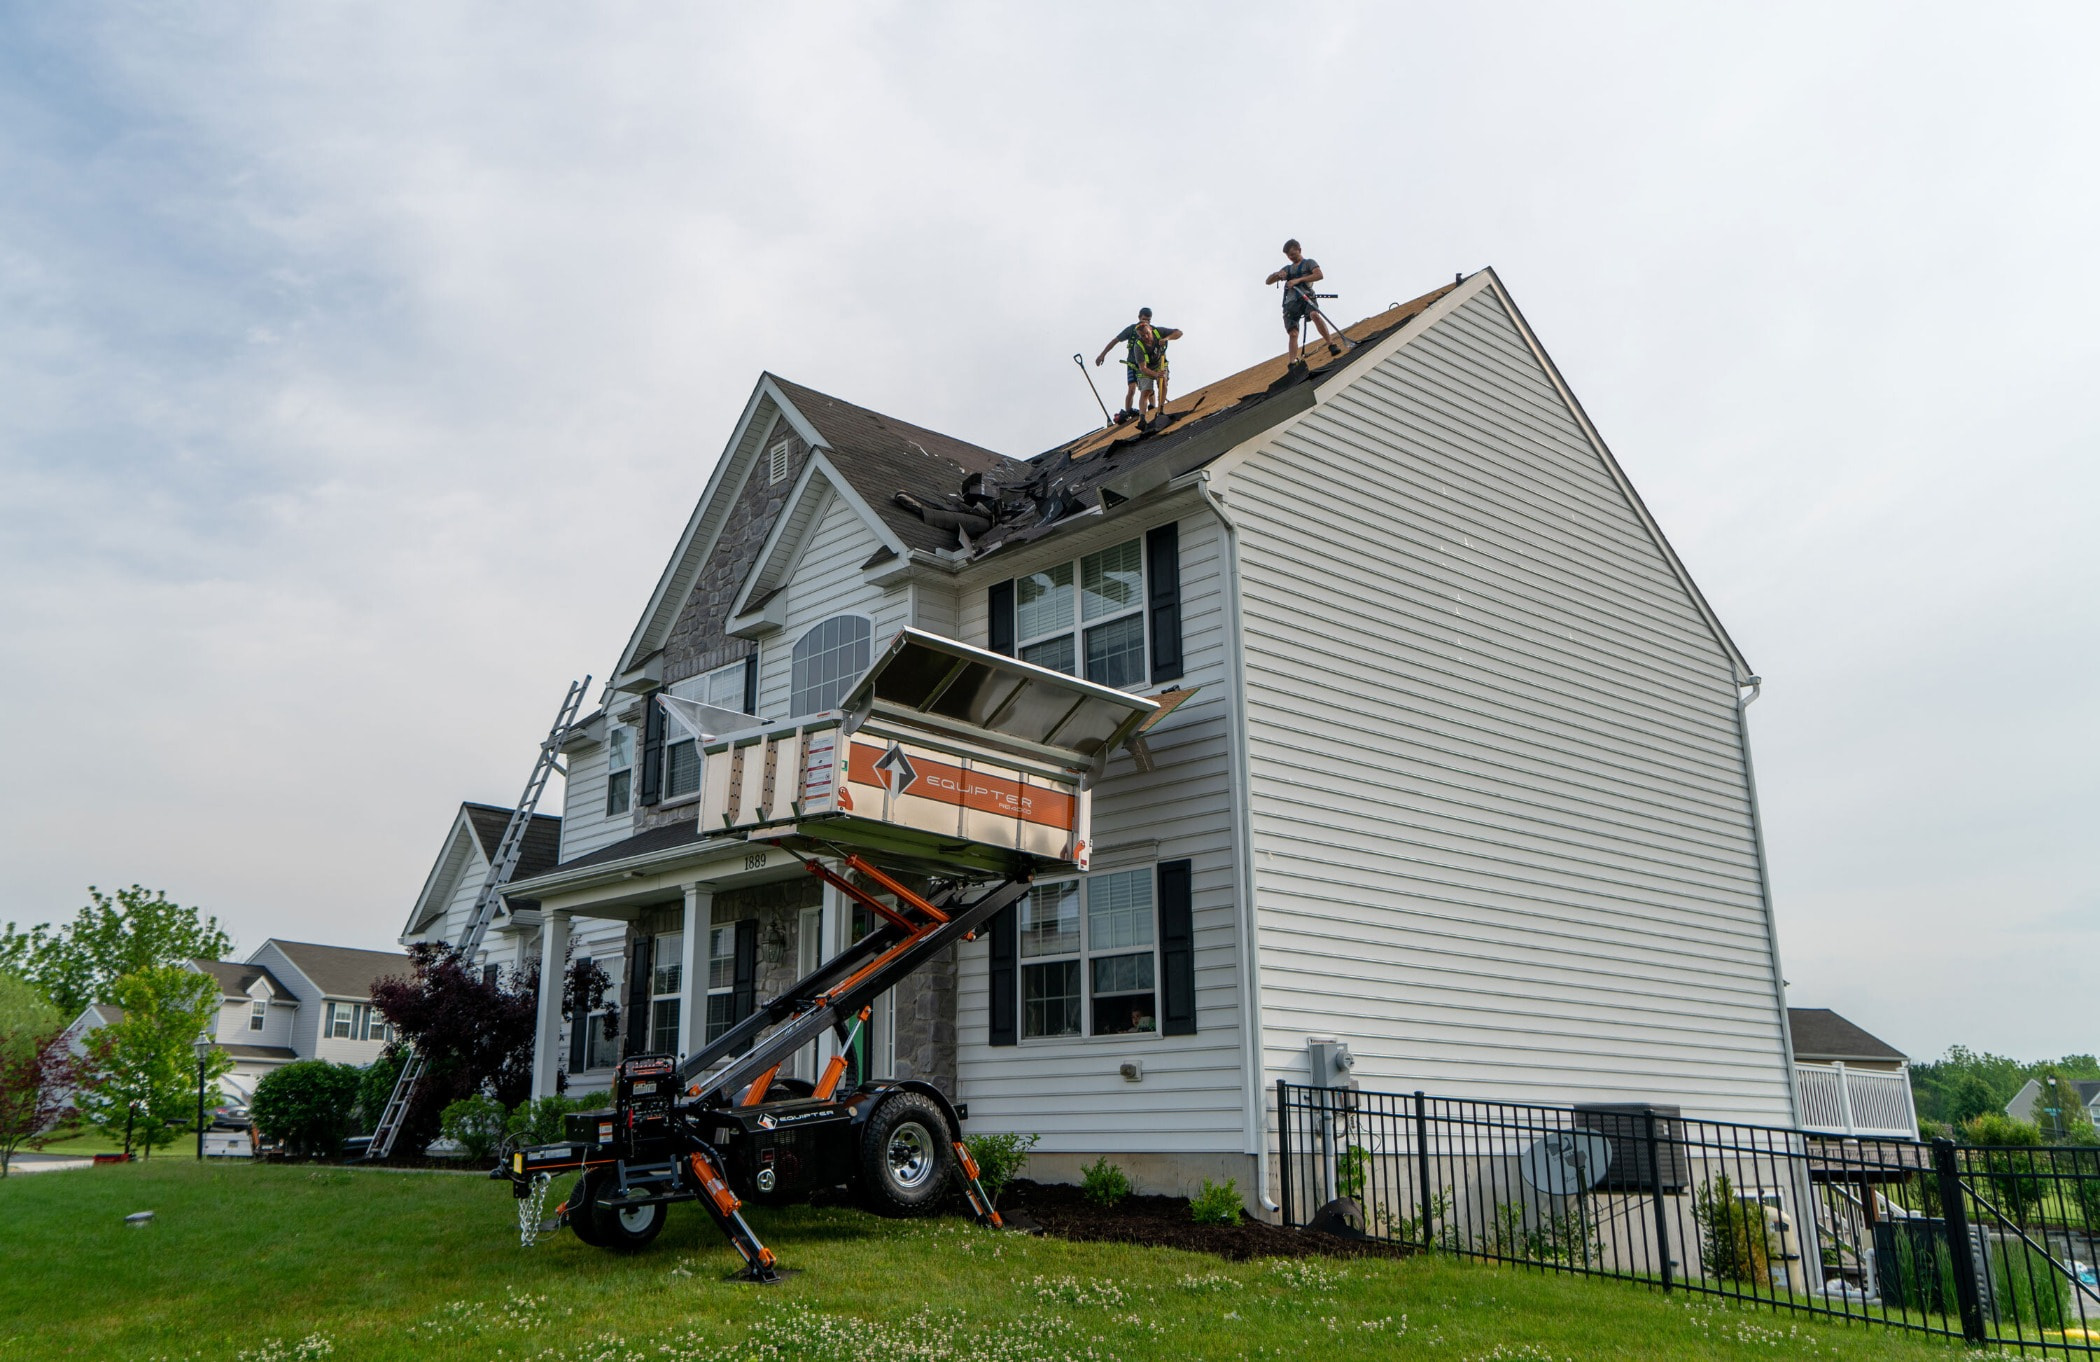 Architecture, Farmhouse, Building, Roof, Siding, Home, Property, House